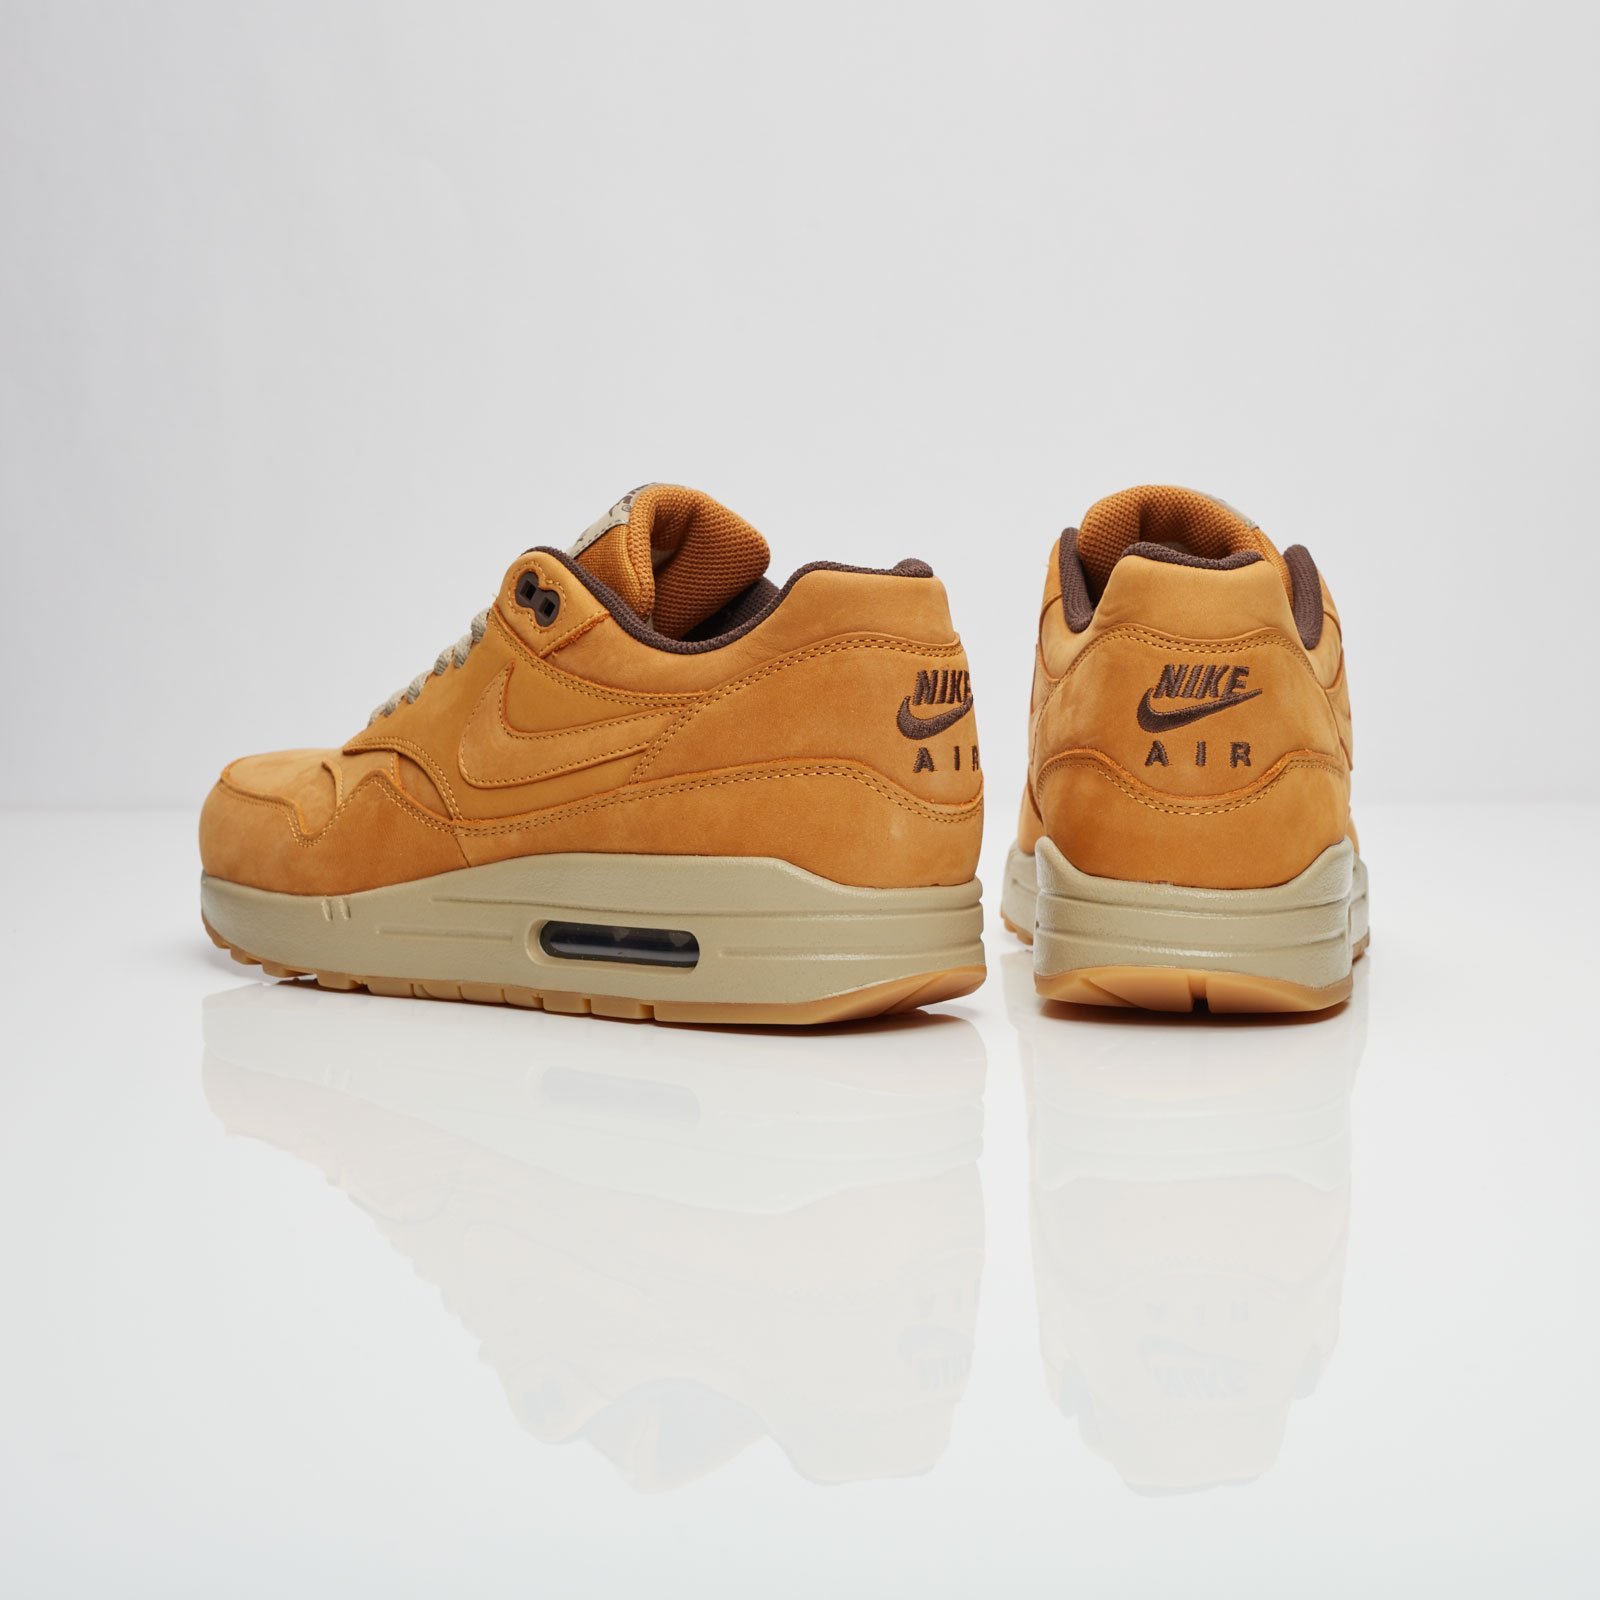 the latest de5aa 30d6d Nike Air Max 1 Leather Premium - 705282-700 - Sneakersnstuff   sneakers    streetwear online since 1999